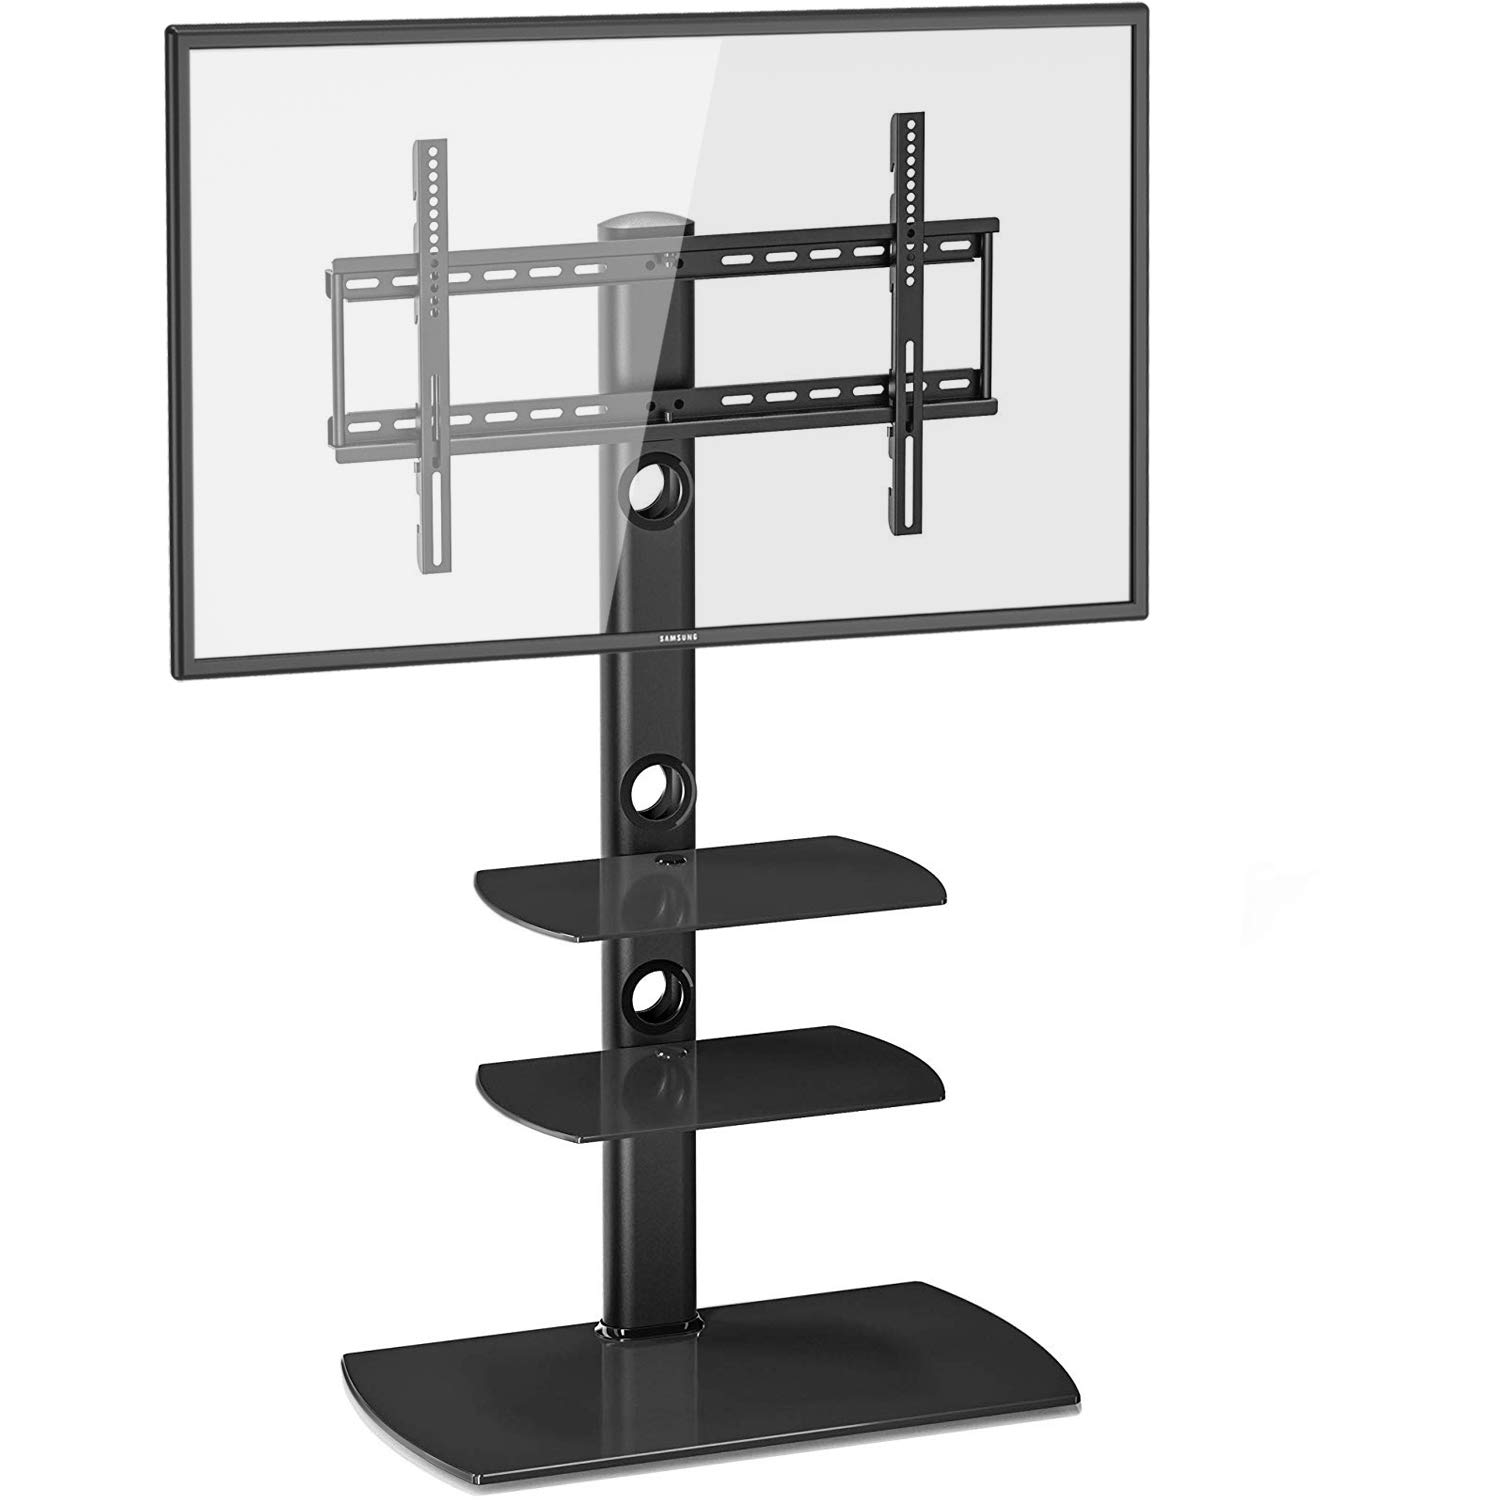 Fitueyes Floor TV Stand with Swivel Mount Height Adjustable Bracket VESA Patterns up to 600mm x 400mm for 32 to 65 inch LCD, LED OLED TVs TT306501GB